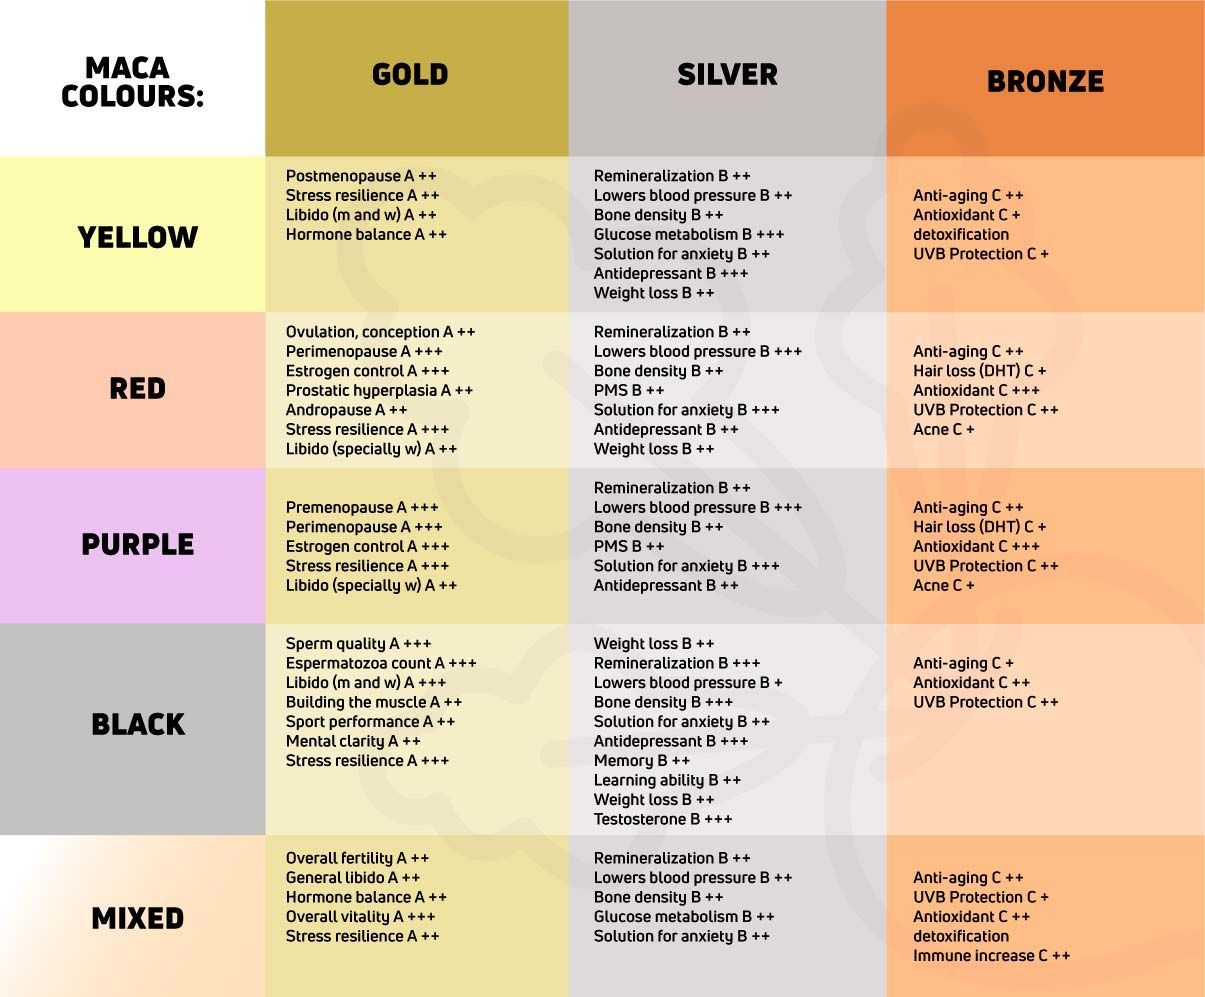 Effects of Maca depending on their colors